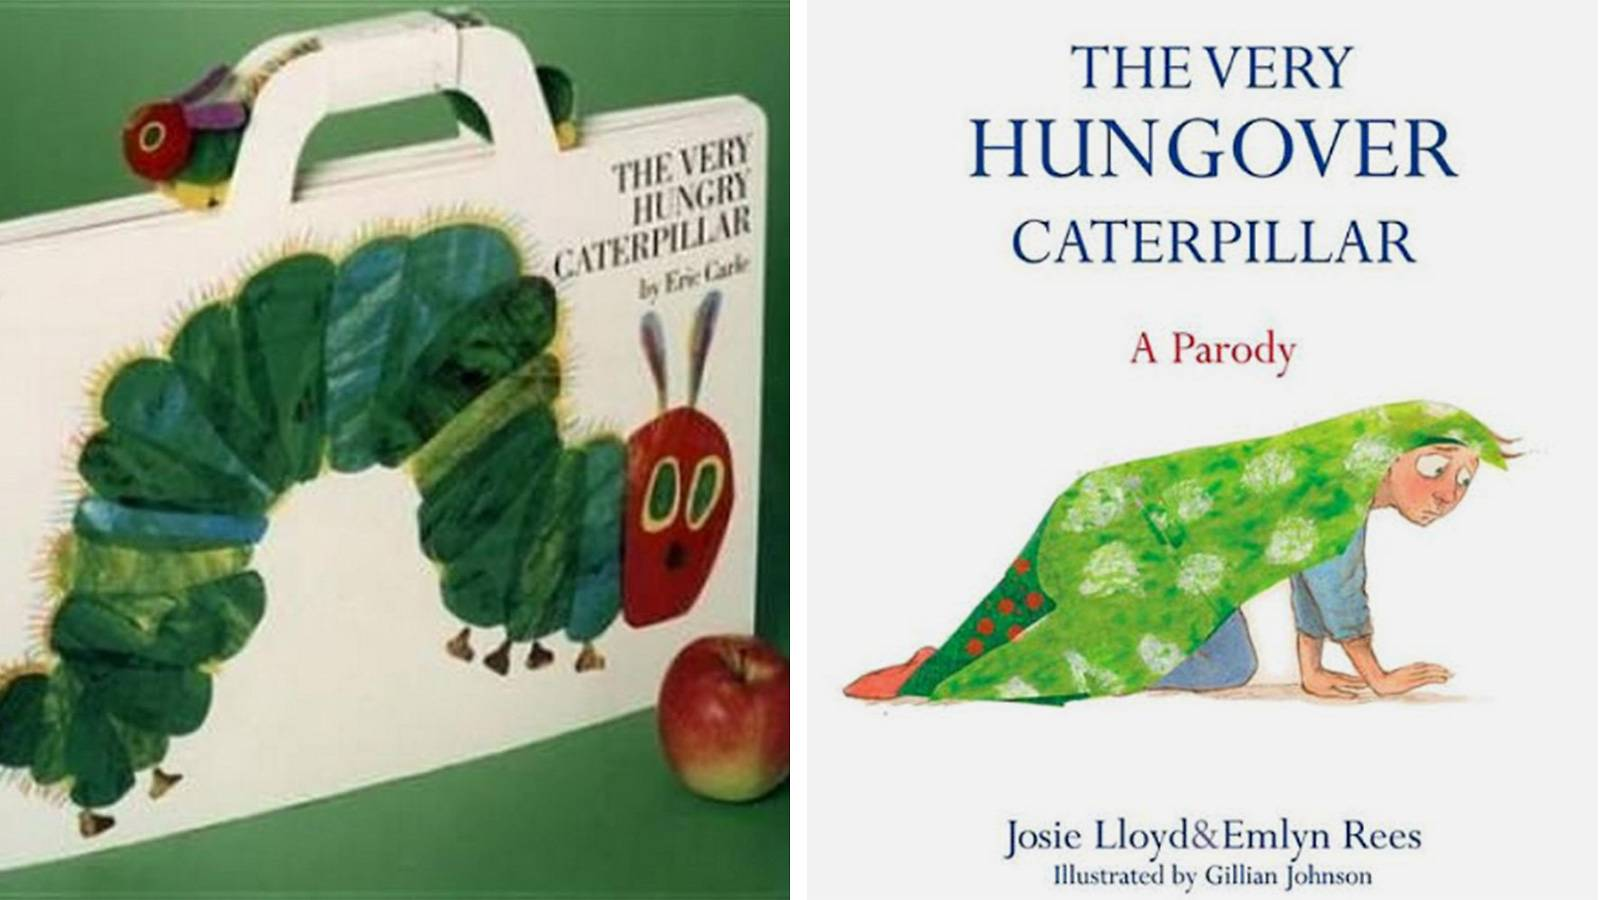 The Very Hungry Caterpillar & The Very Hungover Caterpillar